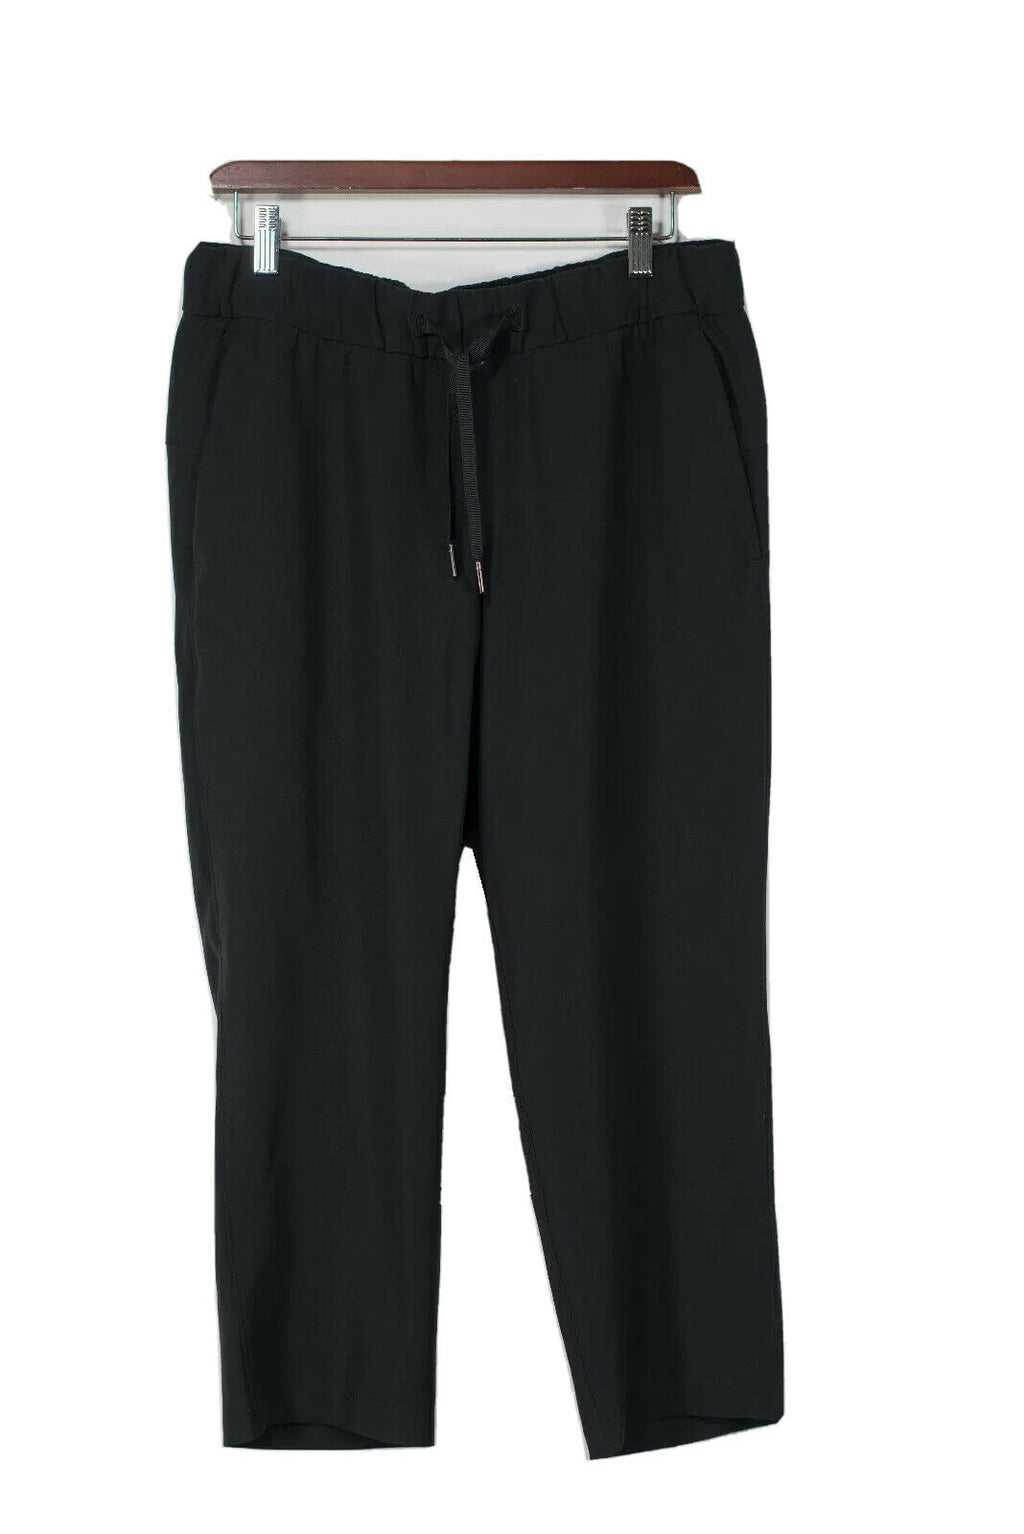 Lululemon Womens Size 8 Black Drawstring Waist Cropped Pants